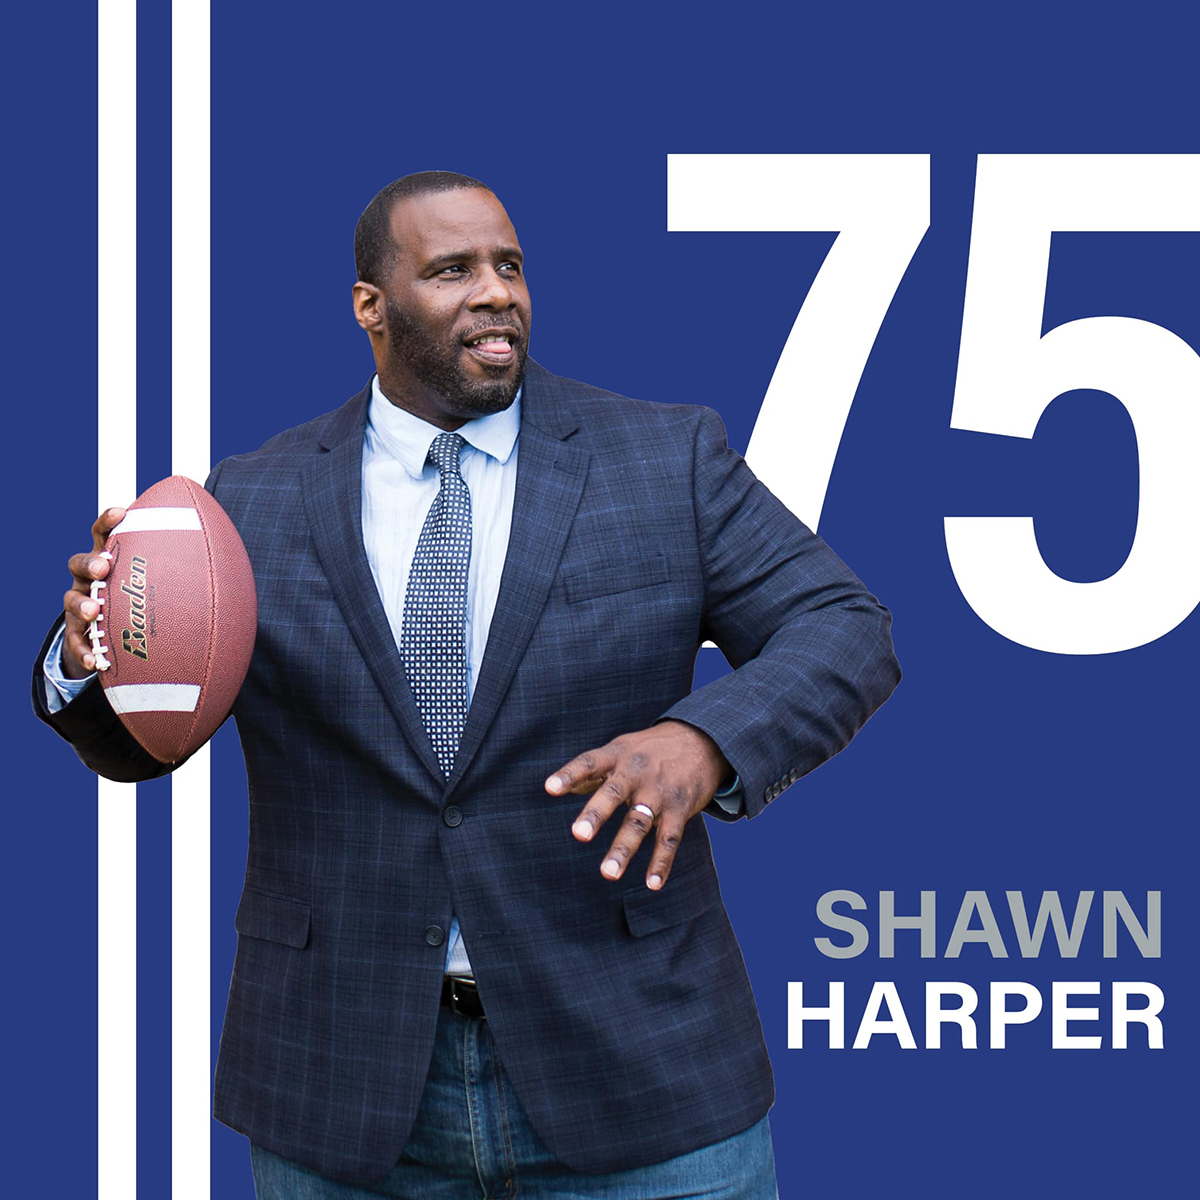 Shawn Harper, Former NFL Player